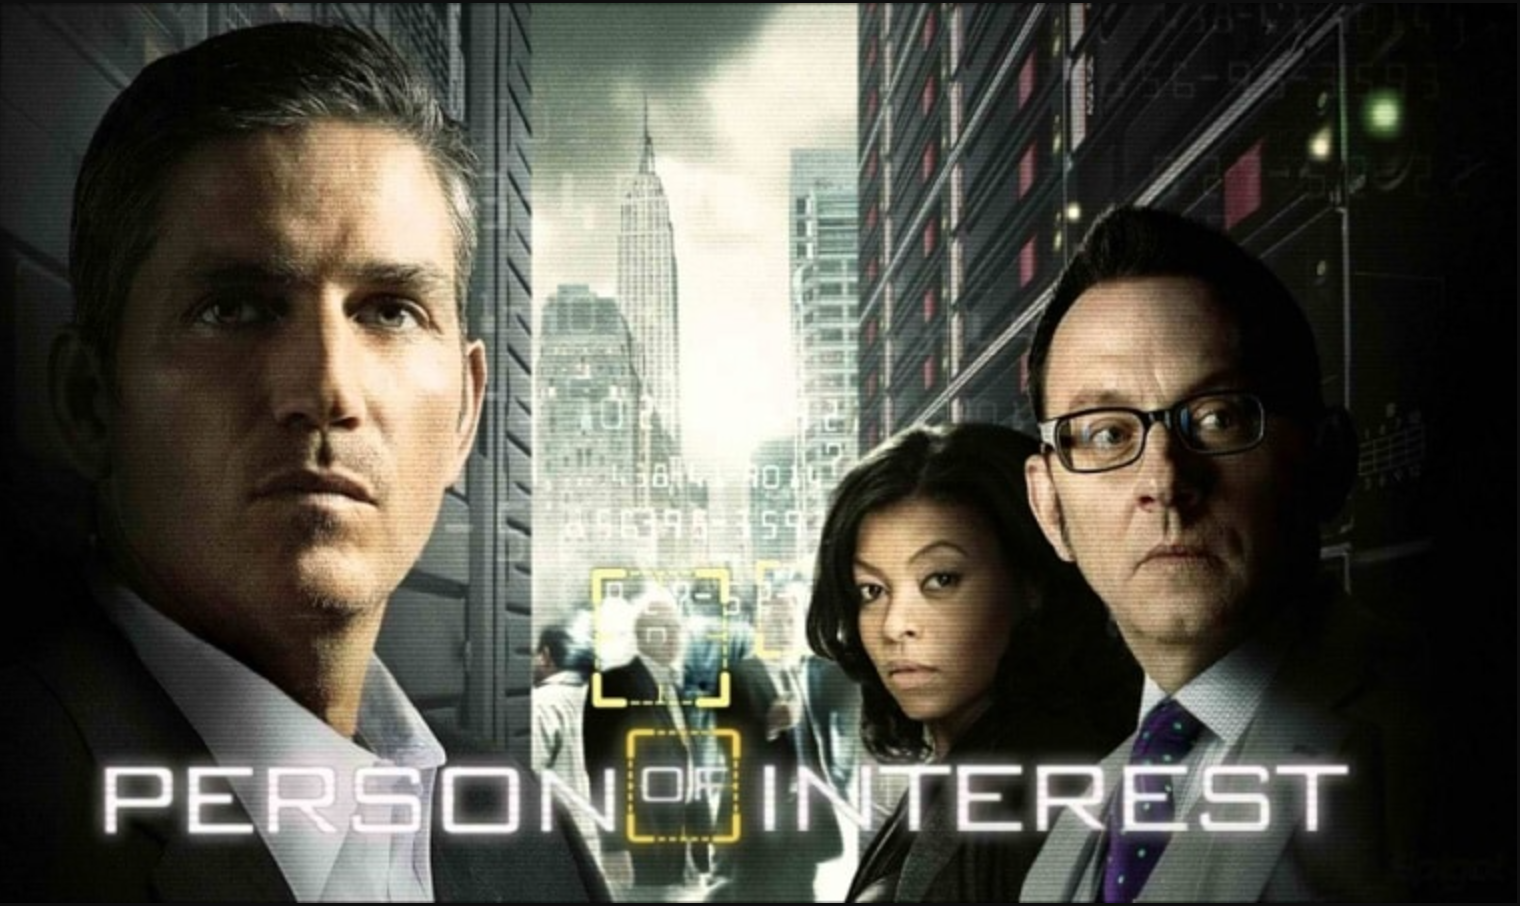 Person of Interest poster courtesy of Netflix